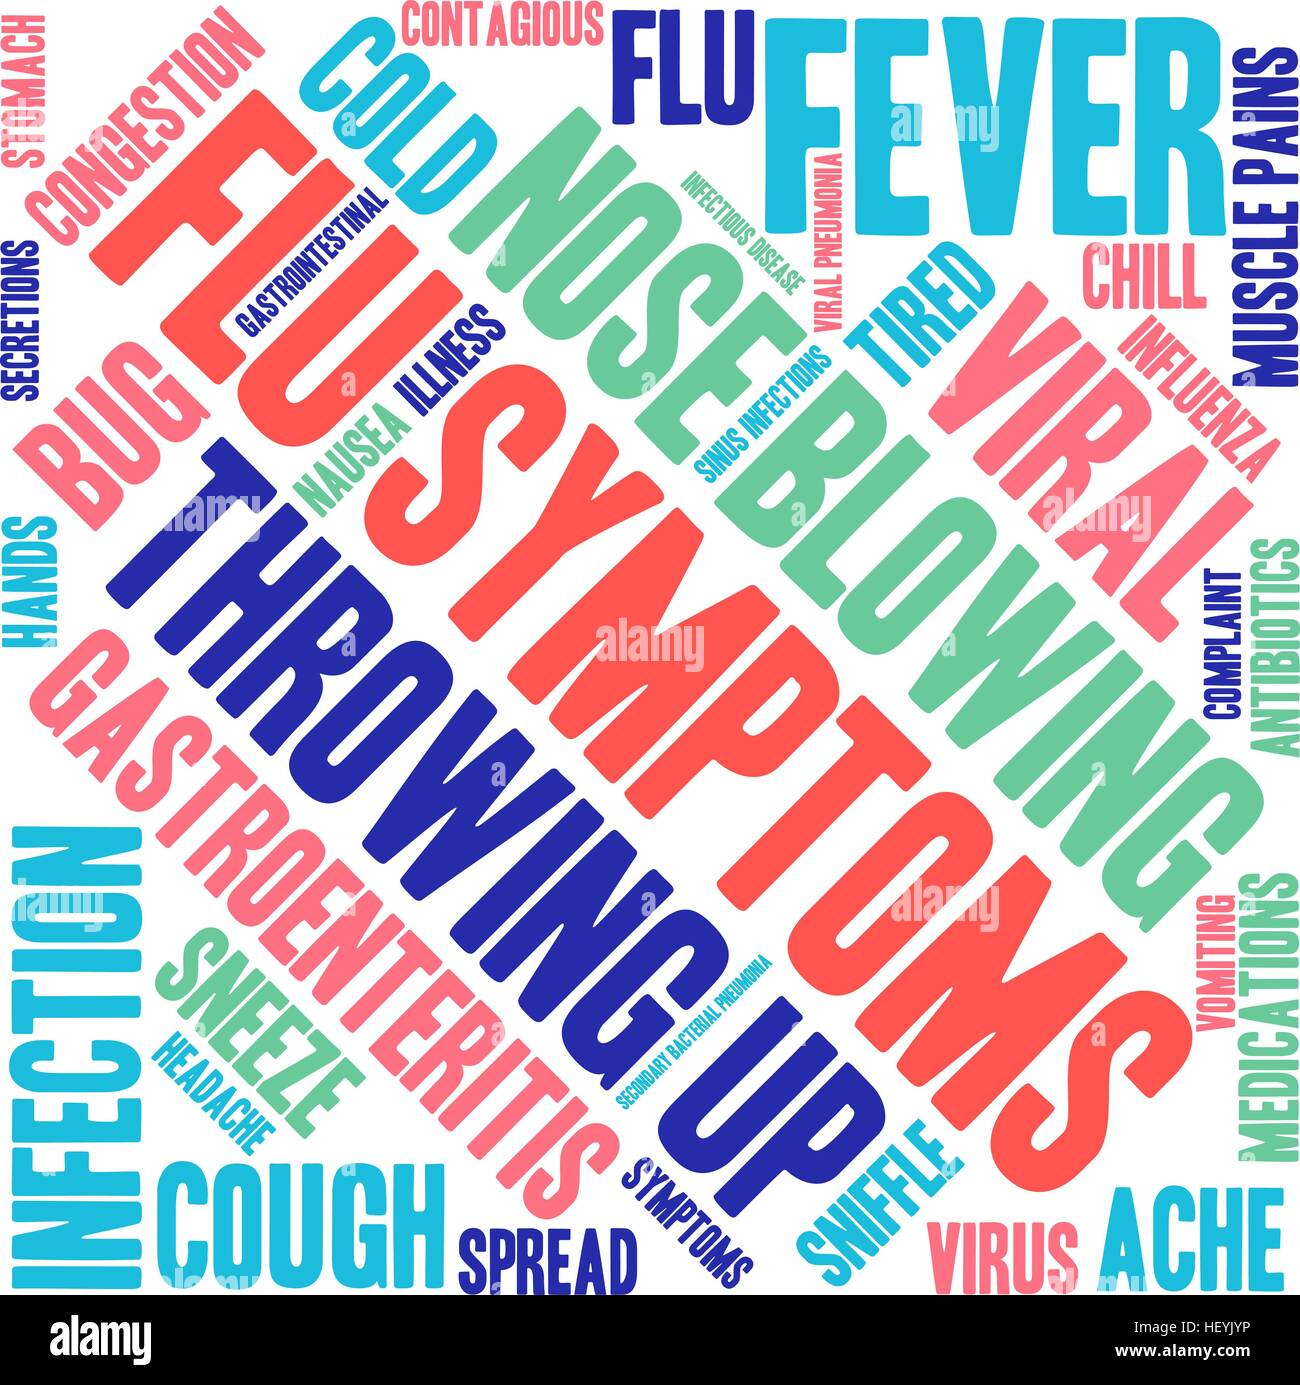 Flu word cloud on a white background. - Stock Vector